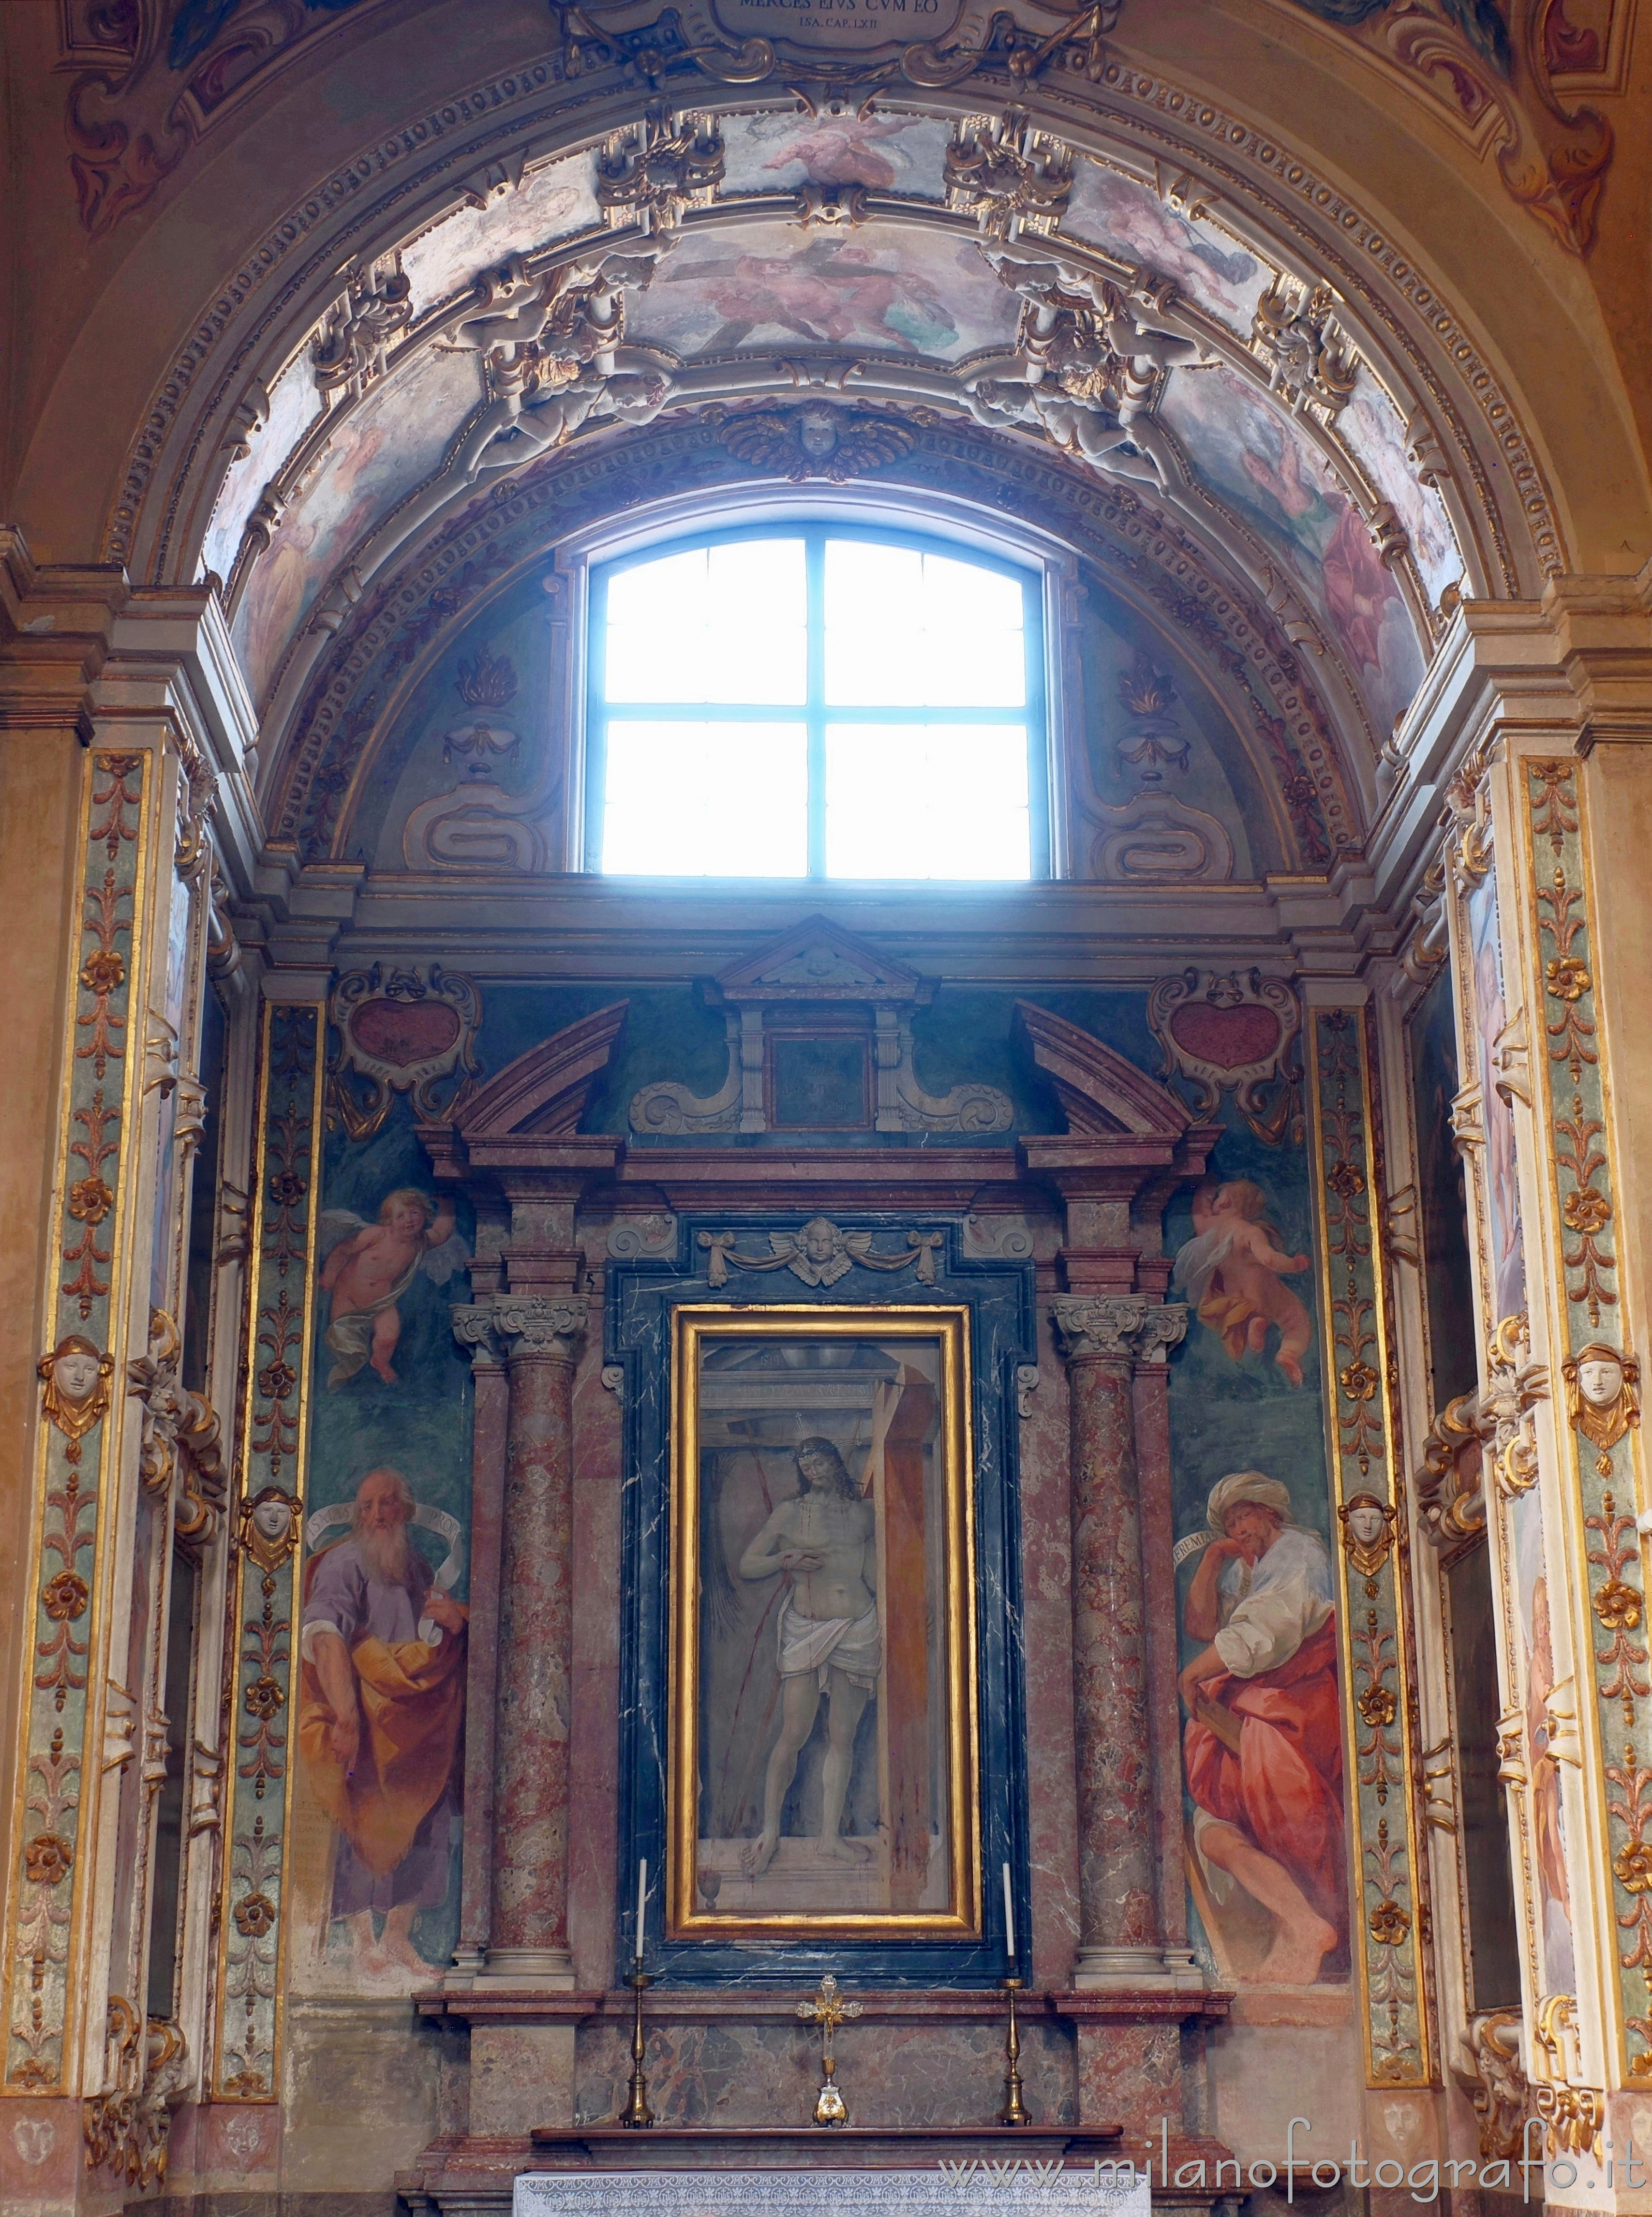 Vimercate (Monza e Brianza, Italy): Chapel of the Savior in the Sanctuary of the Blessed Virgin of the Rosary - Vimercate (Monza e Brianza, Italy)